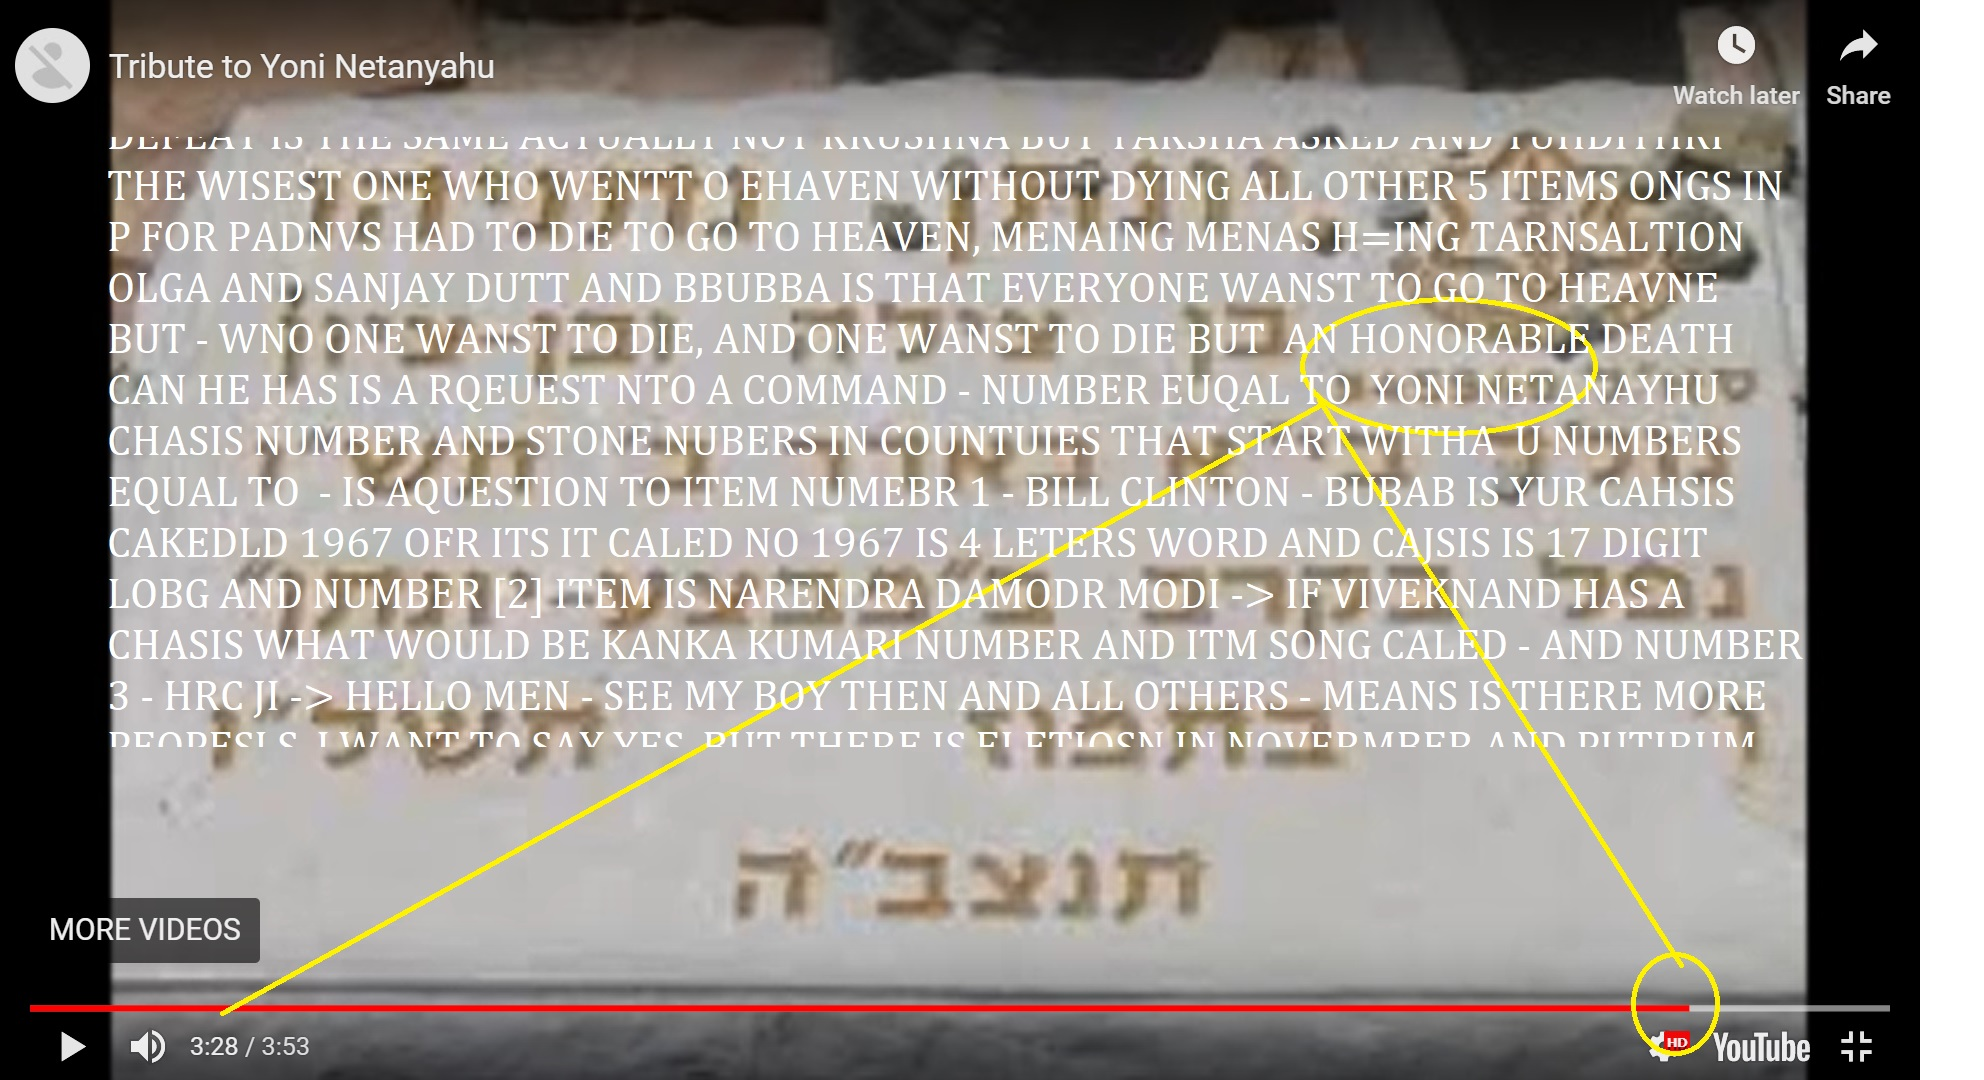 554450 YONI NETANAHU CAHSIS POF MERCEDES AND CAR PLATE AND 1967 FORD MUSTANG AND 616 GANTZ AND NETANYAHUA ND OLGA AND CLINTON AND READ THE IMAGE BECASUE IMY LIPS ARE EALED